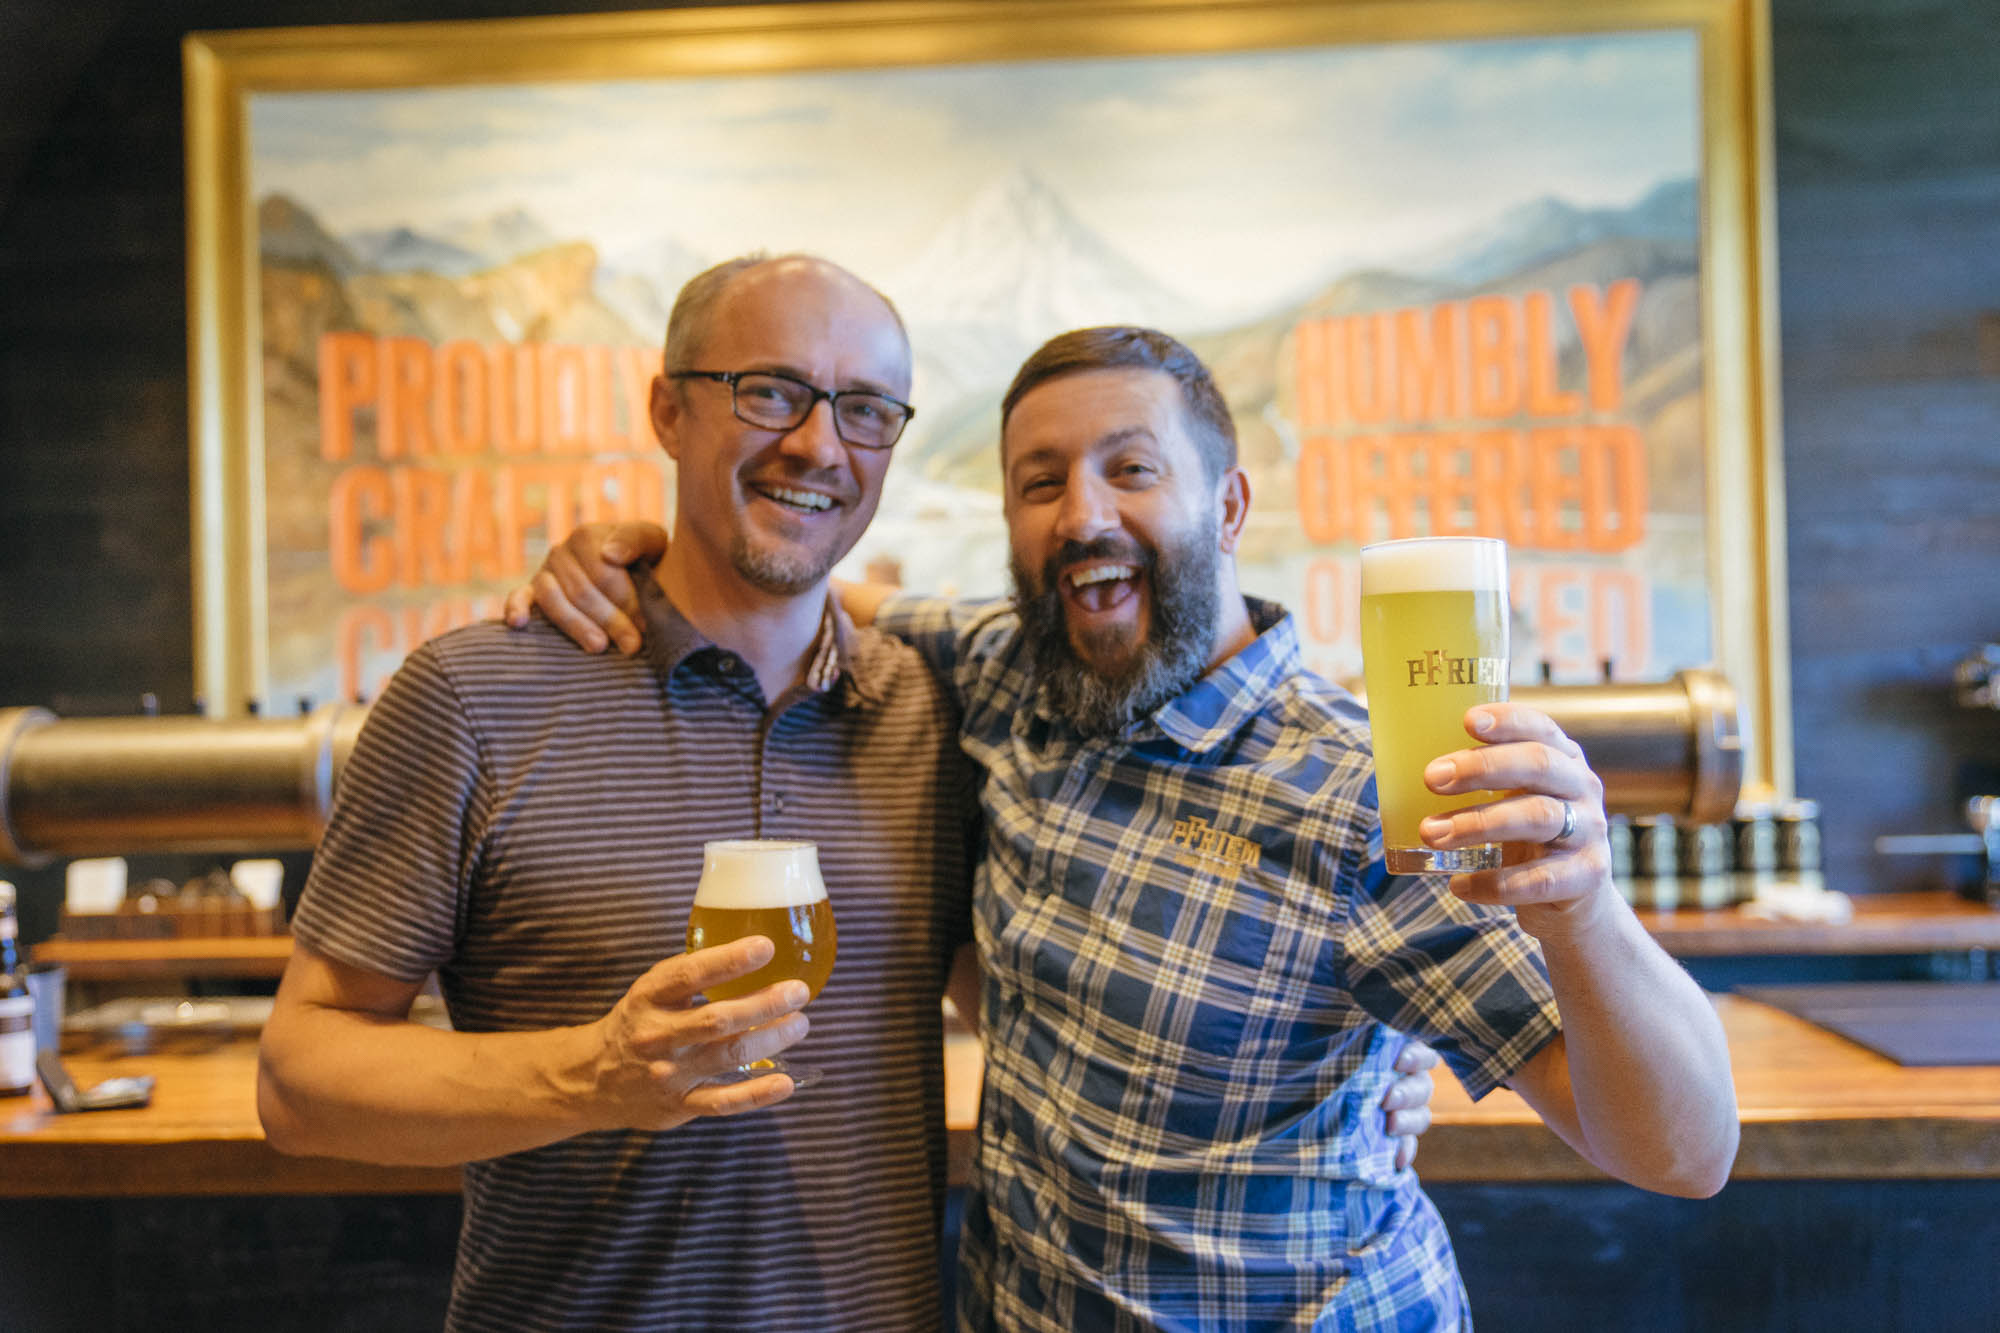 The owners of pFriem Family Brewers celebrate and smile with beers in their taproom in Hood River, Oregon.